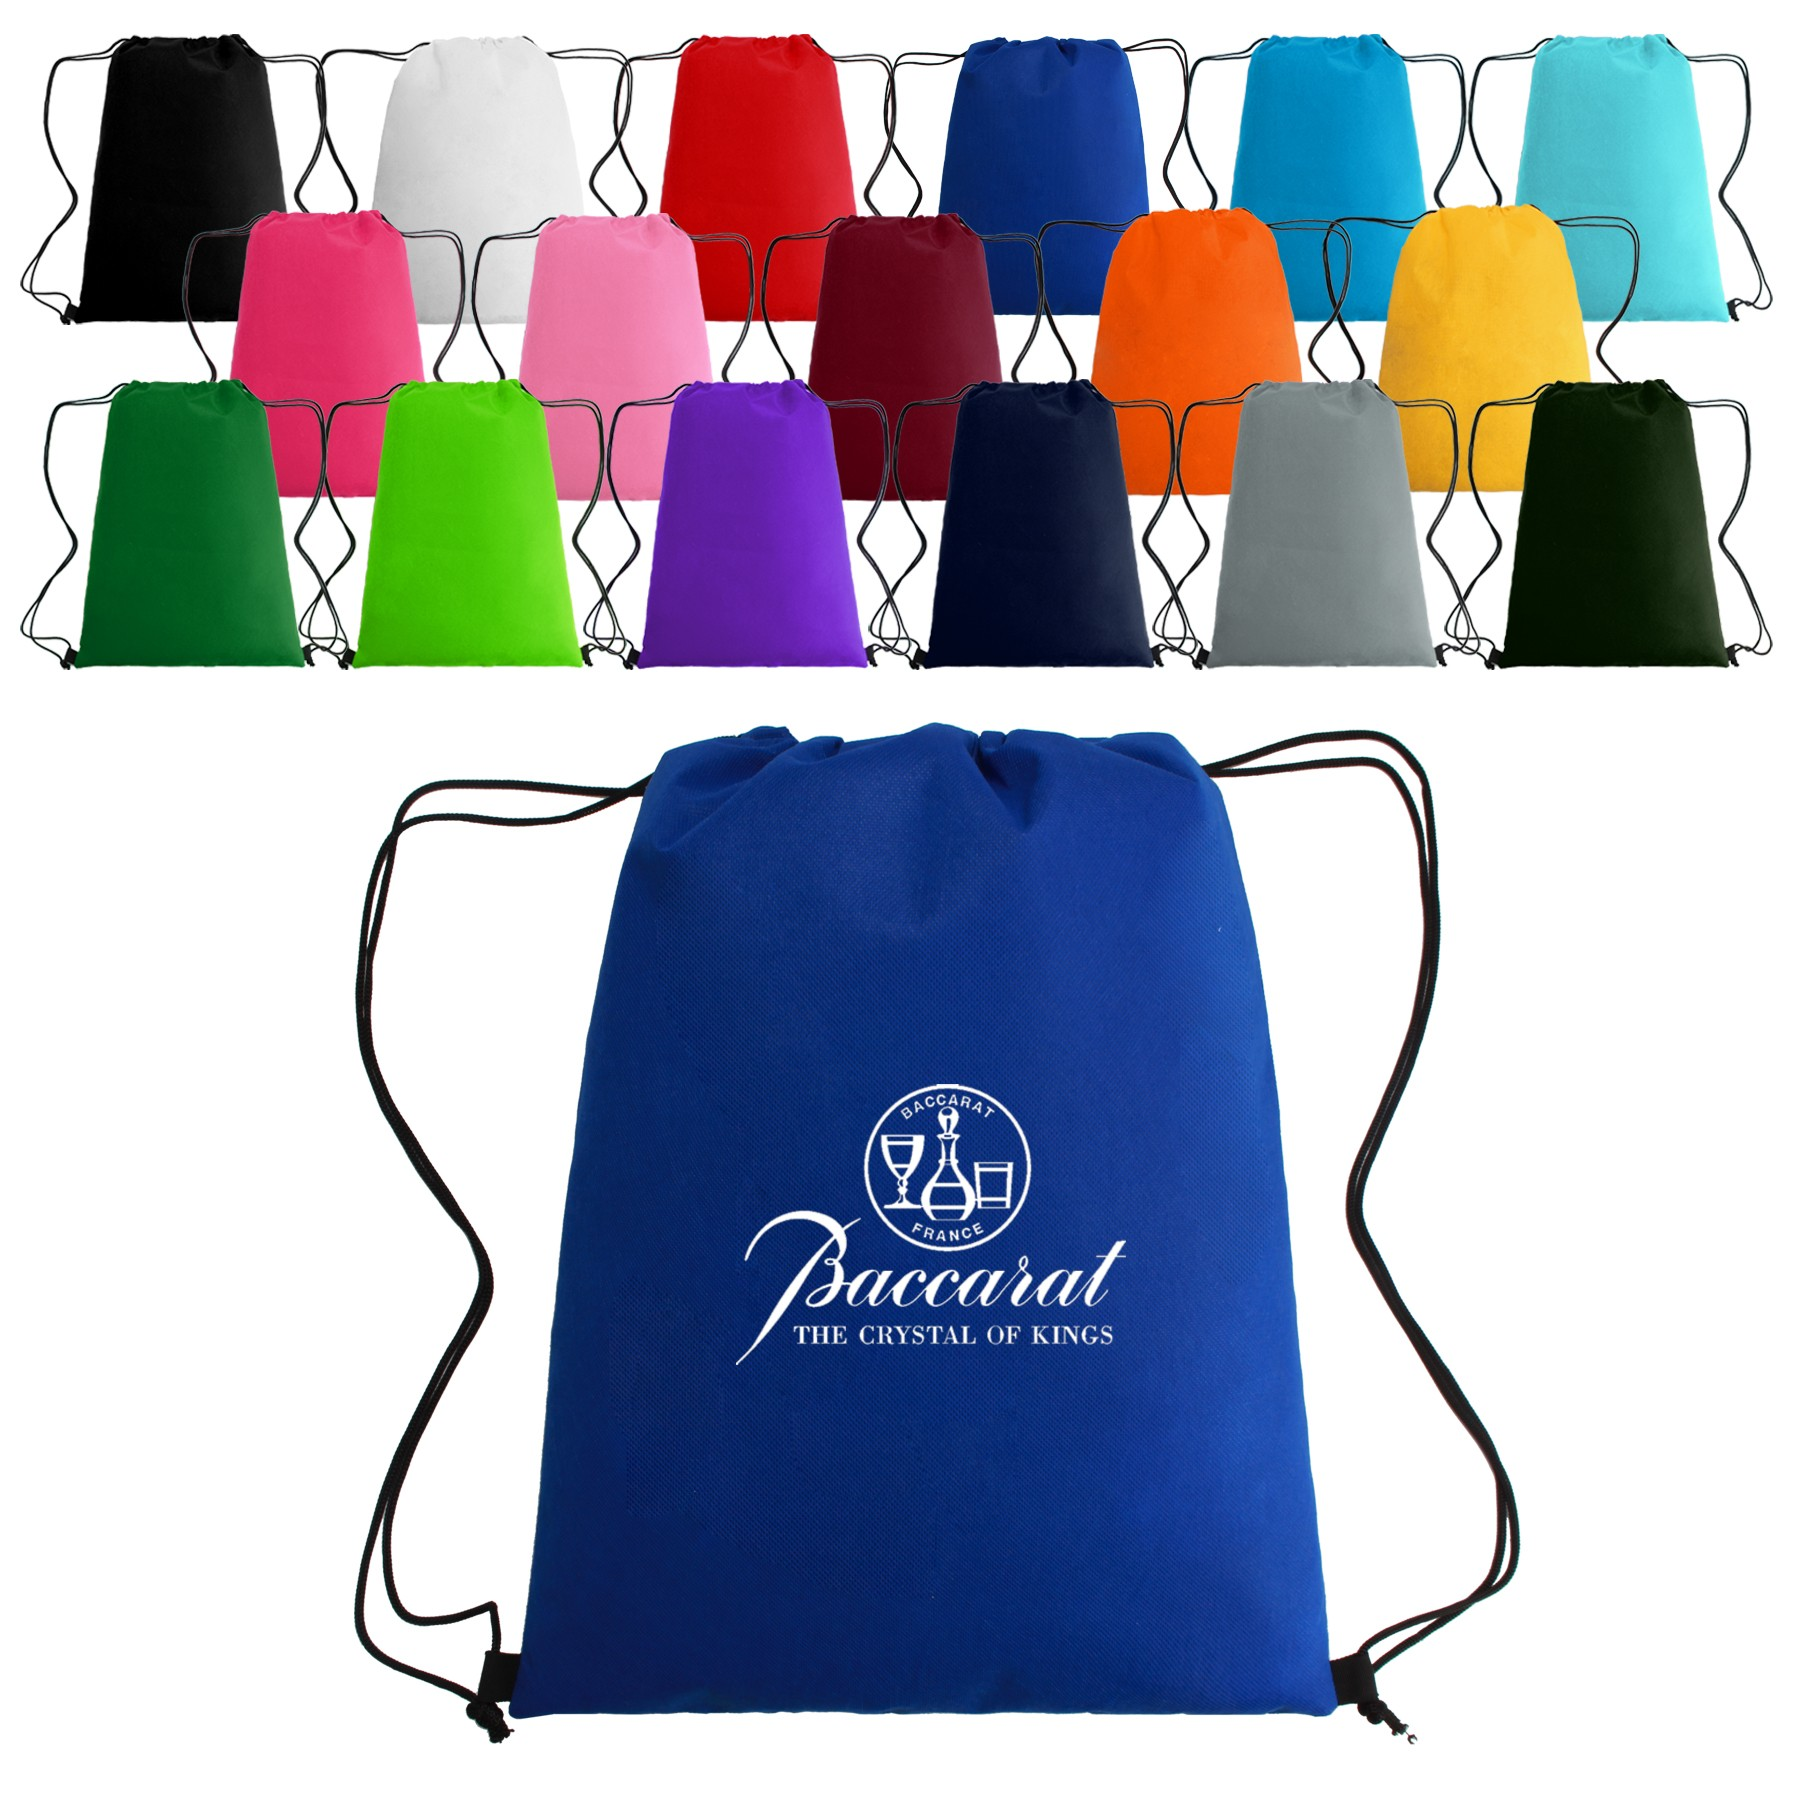 Non-Woven Drawstring Sports Bag - 14